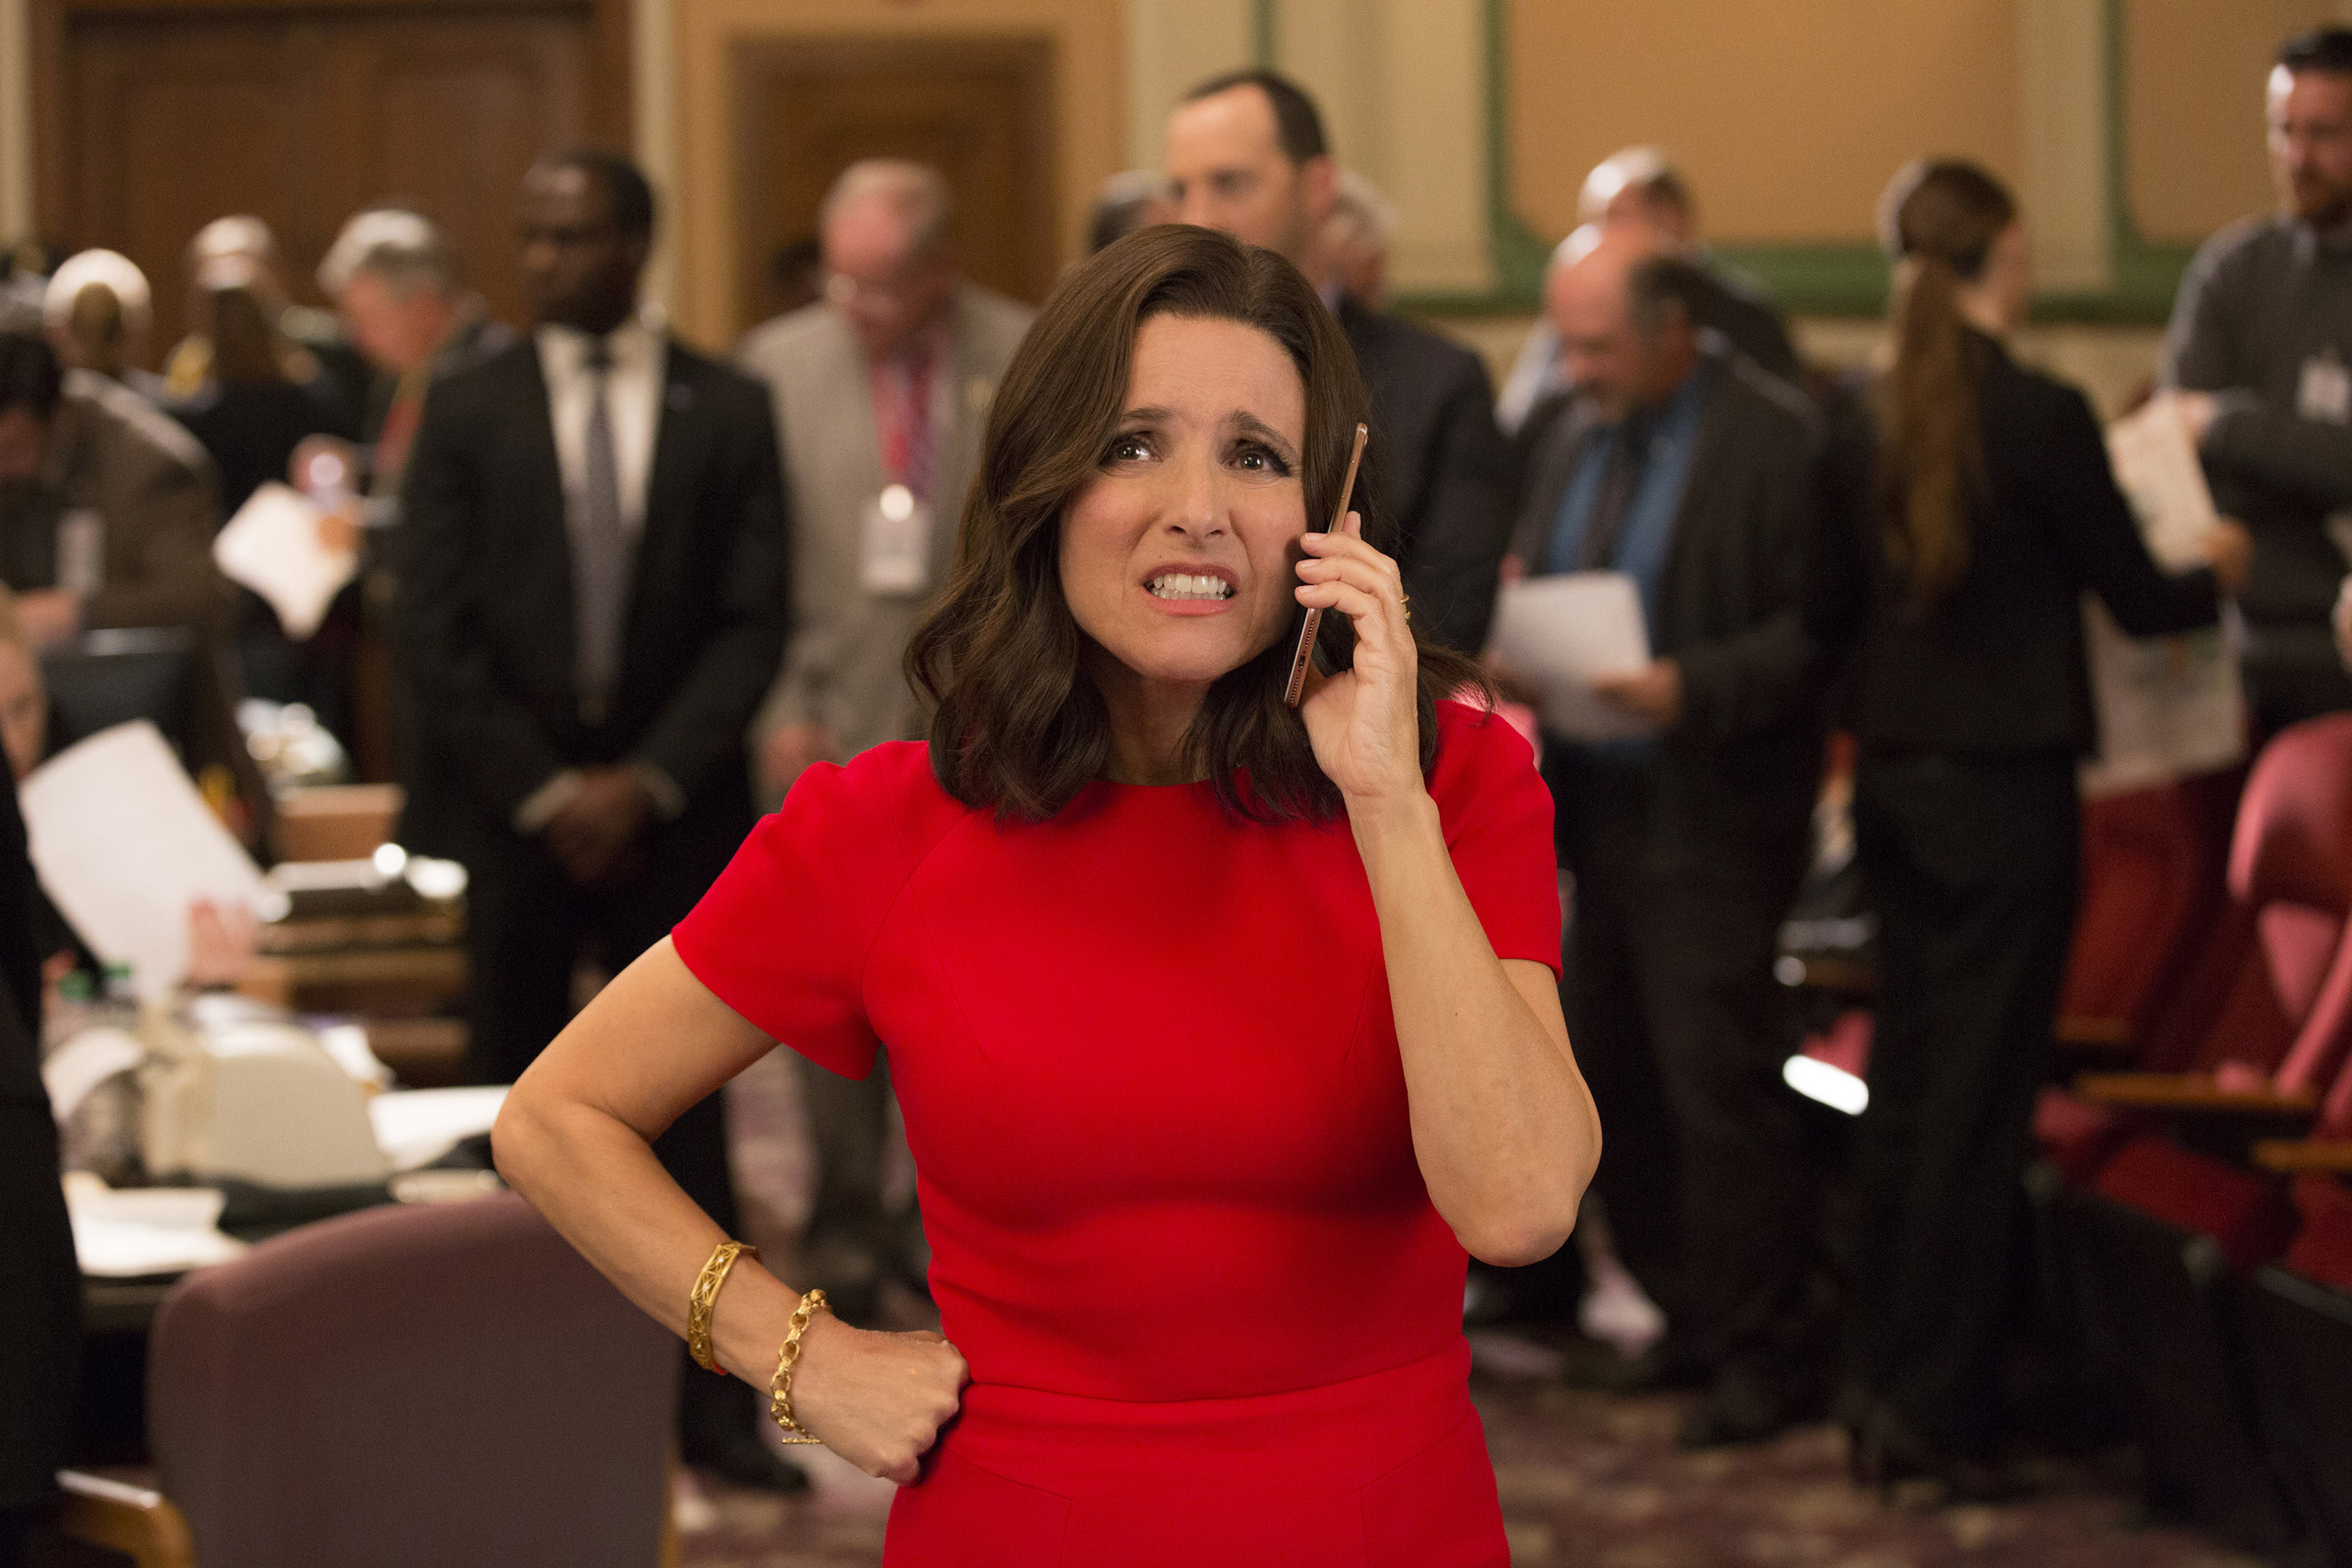 Tag: Veep tv series | Useless Daily: The amazing facts, news